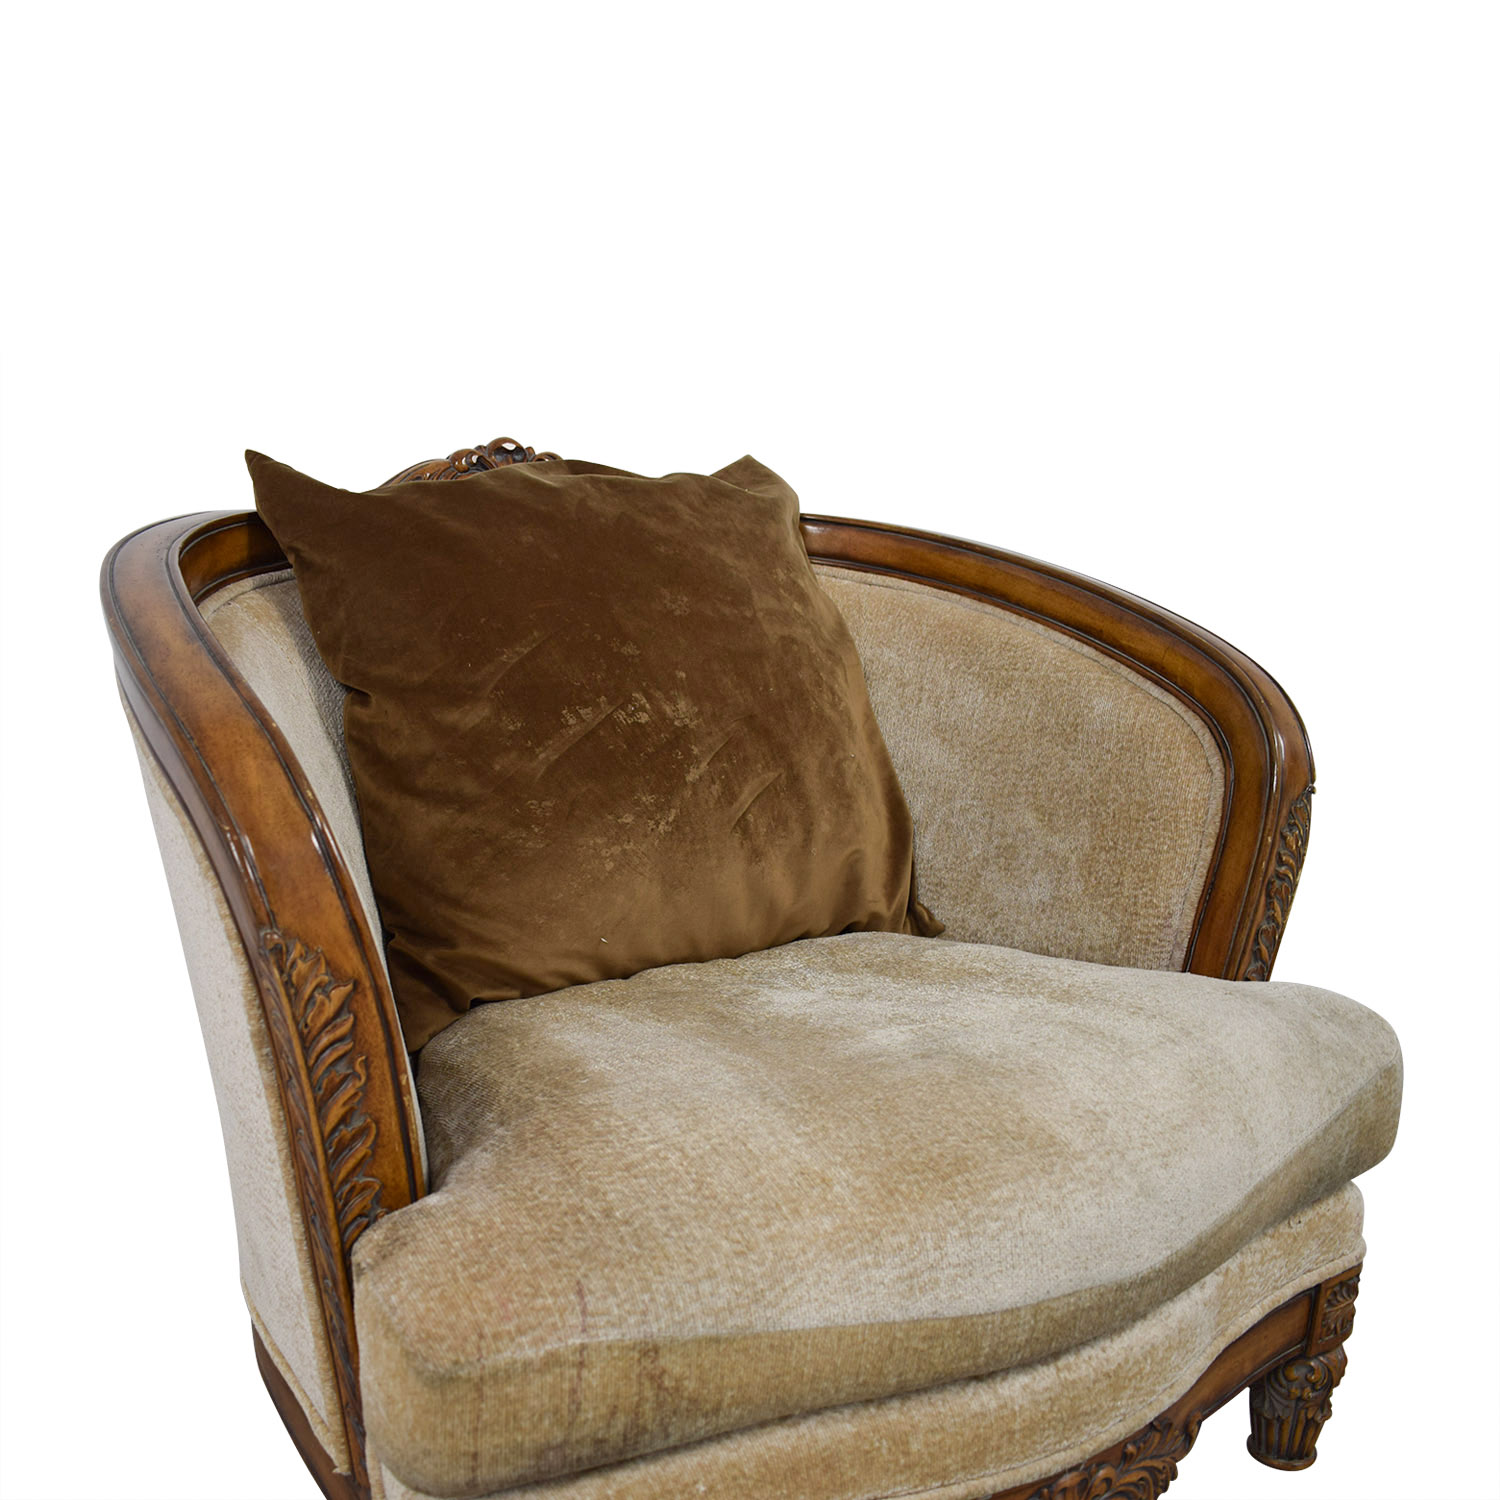 buy Beige Upholstered and Wood Accent Chair